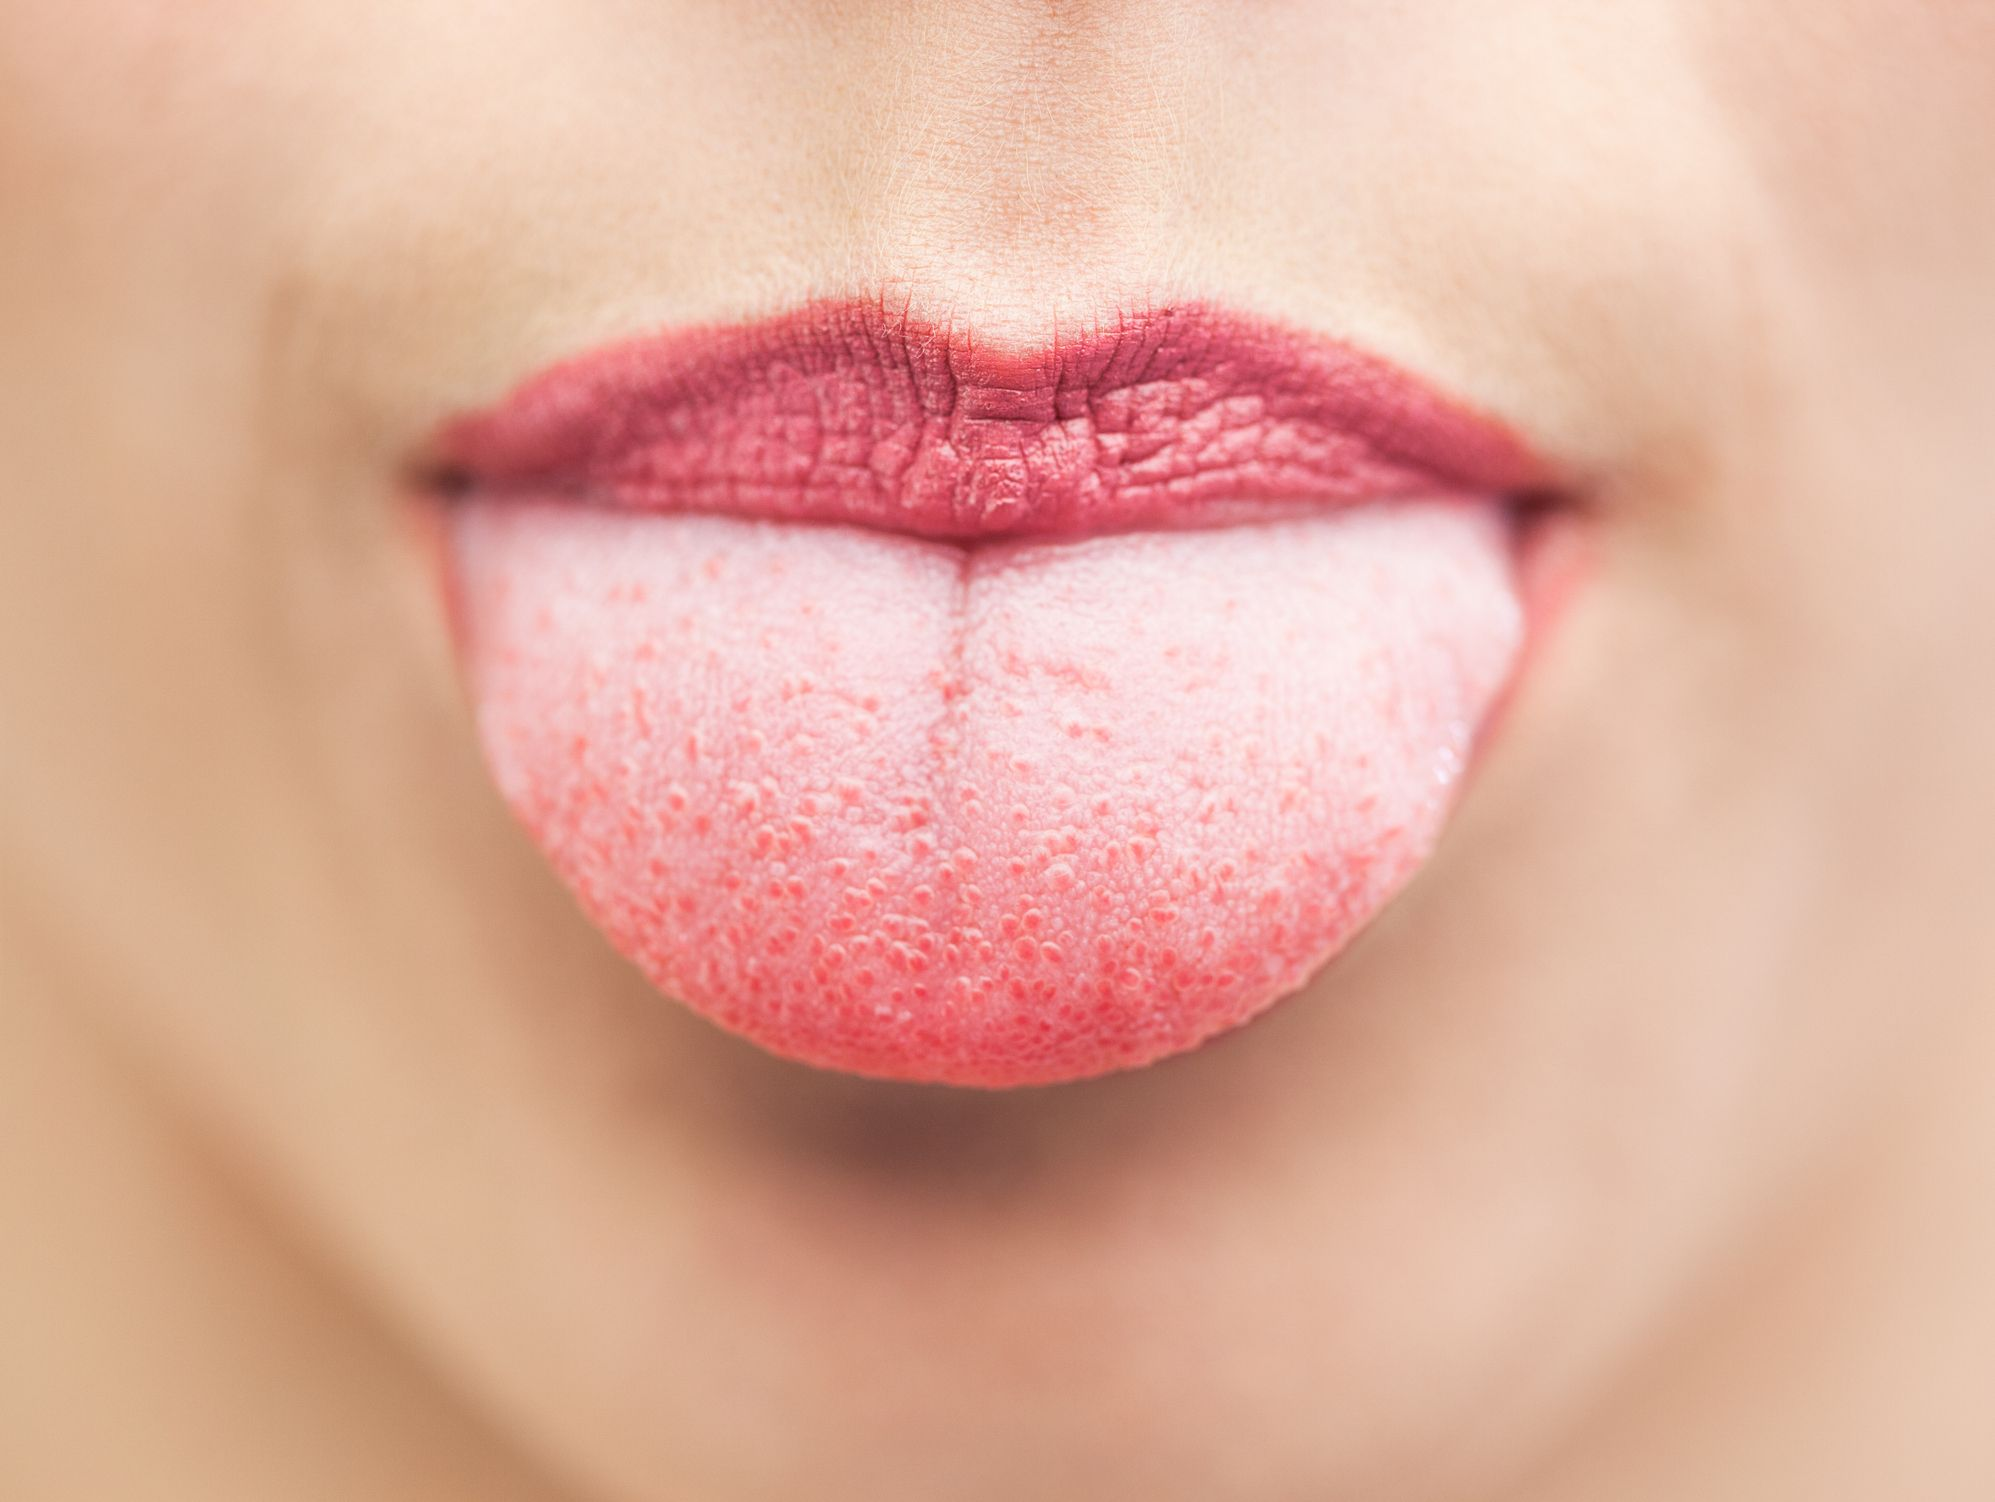 inflammation of tongue papillae